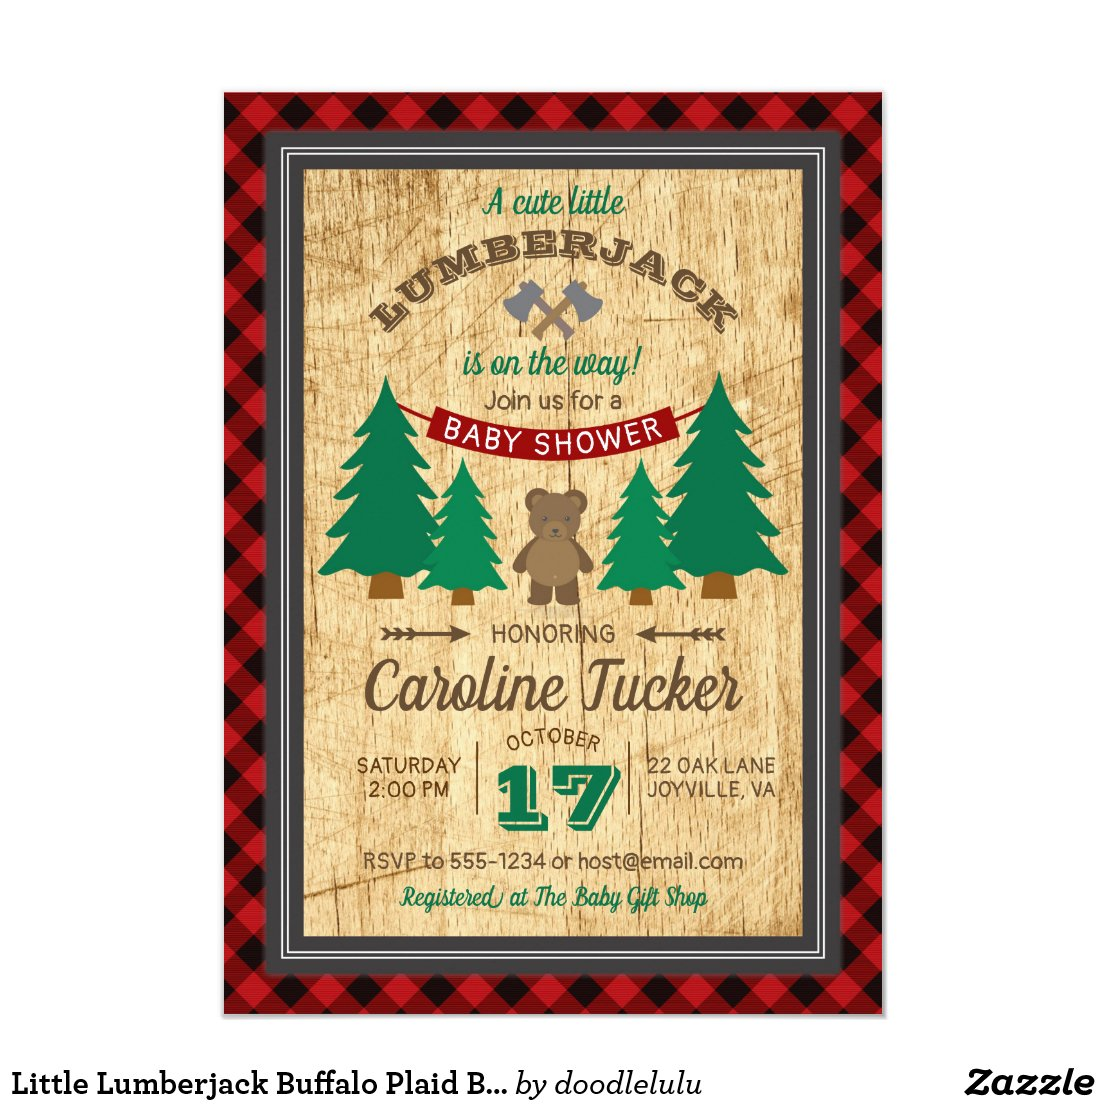 Little Lumberjack Buffalo Plaid Baby Shower Invitation